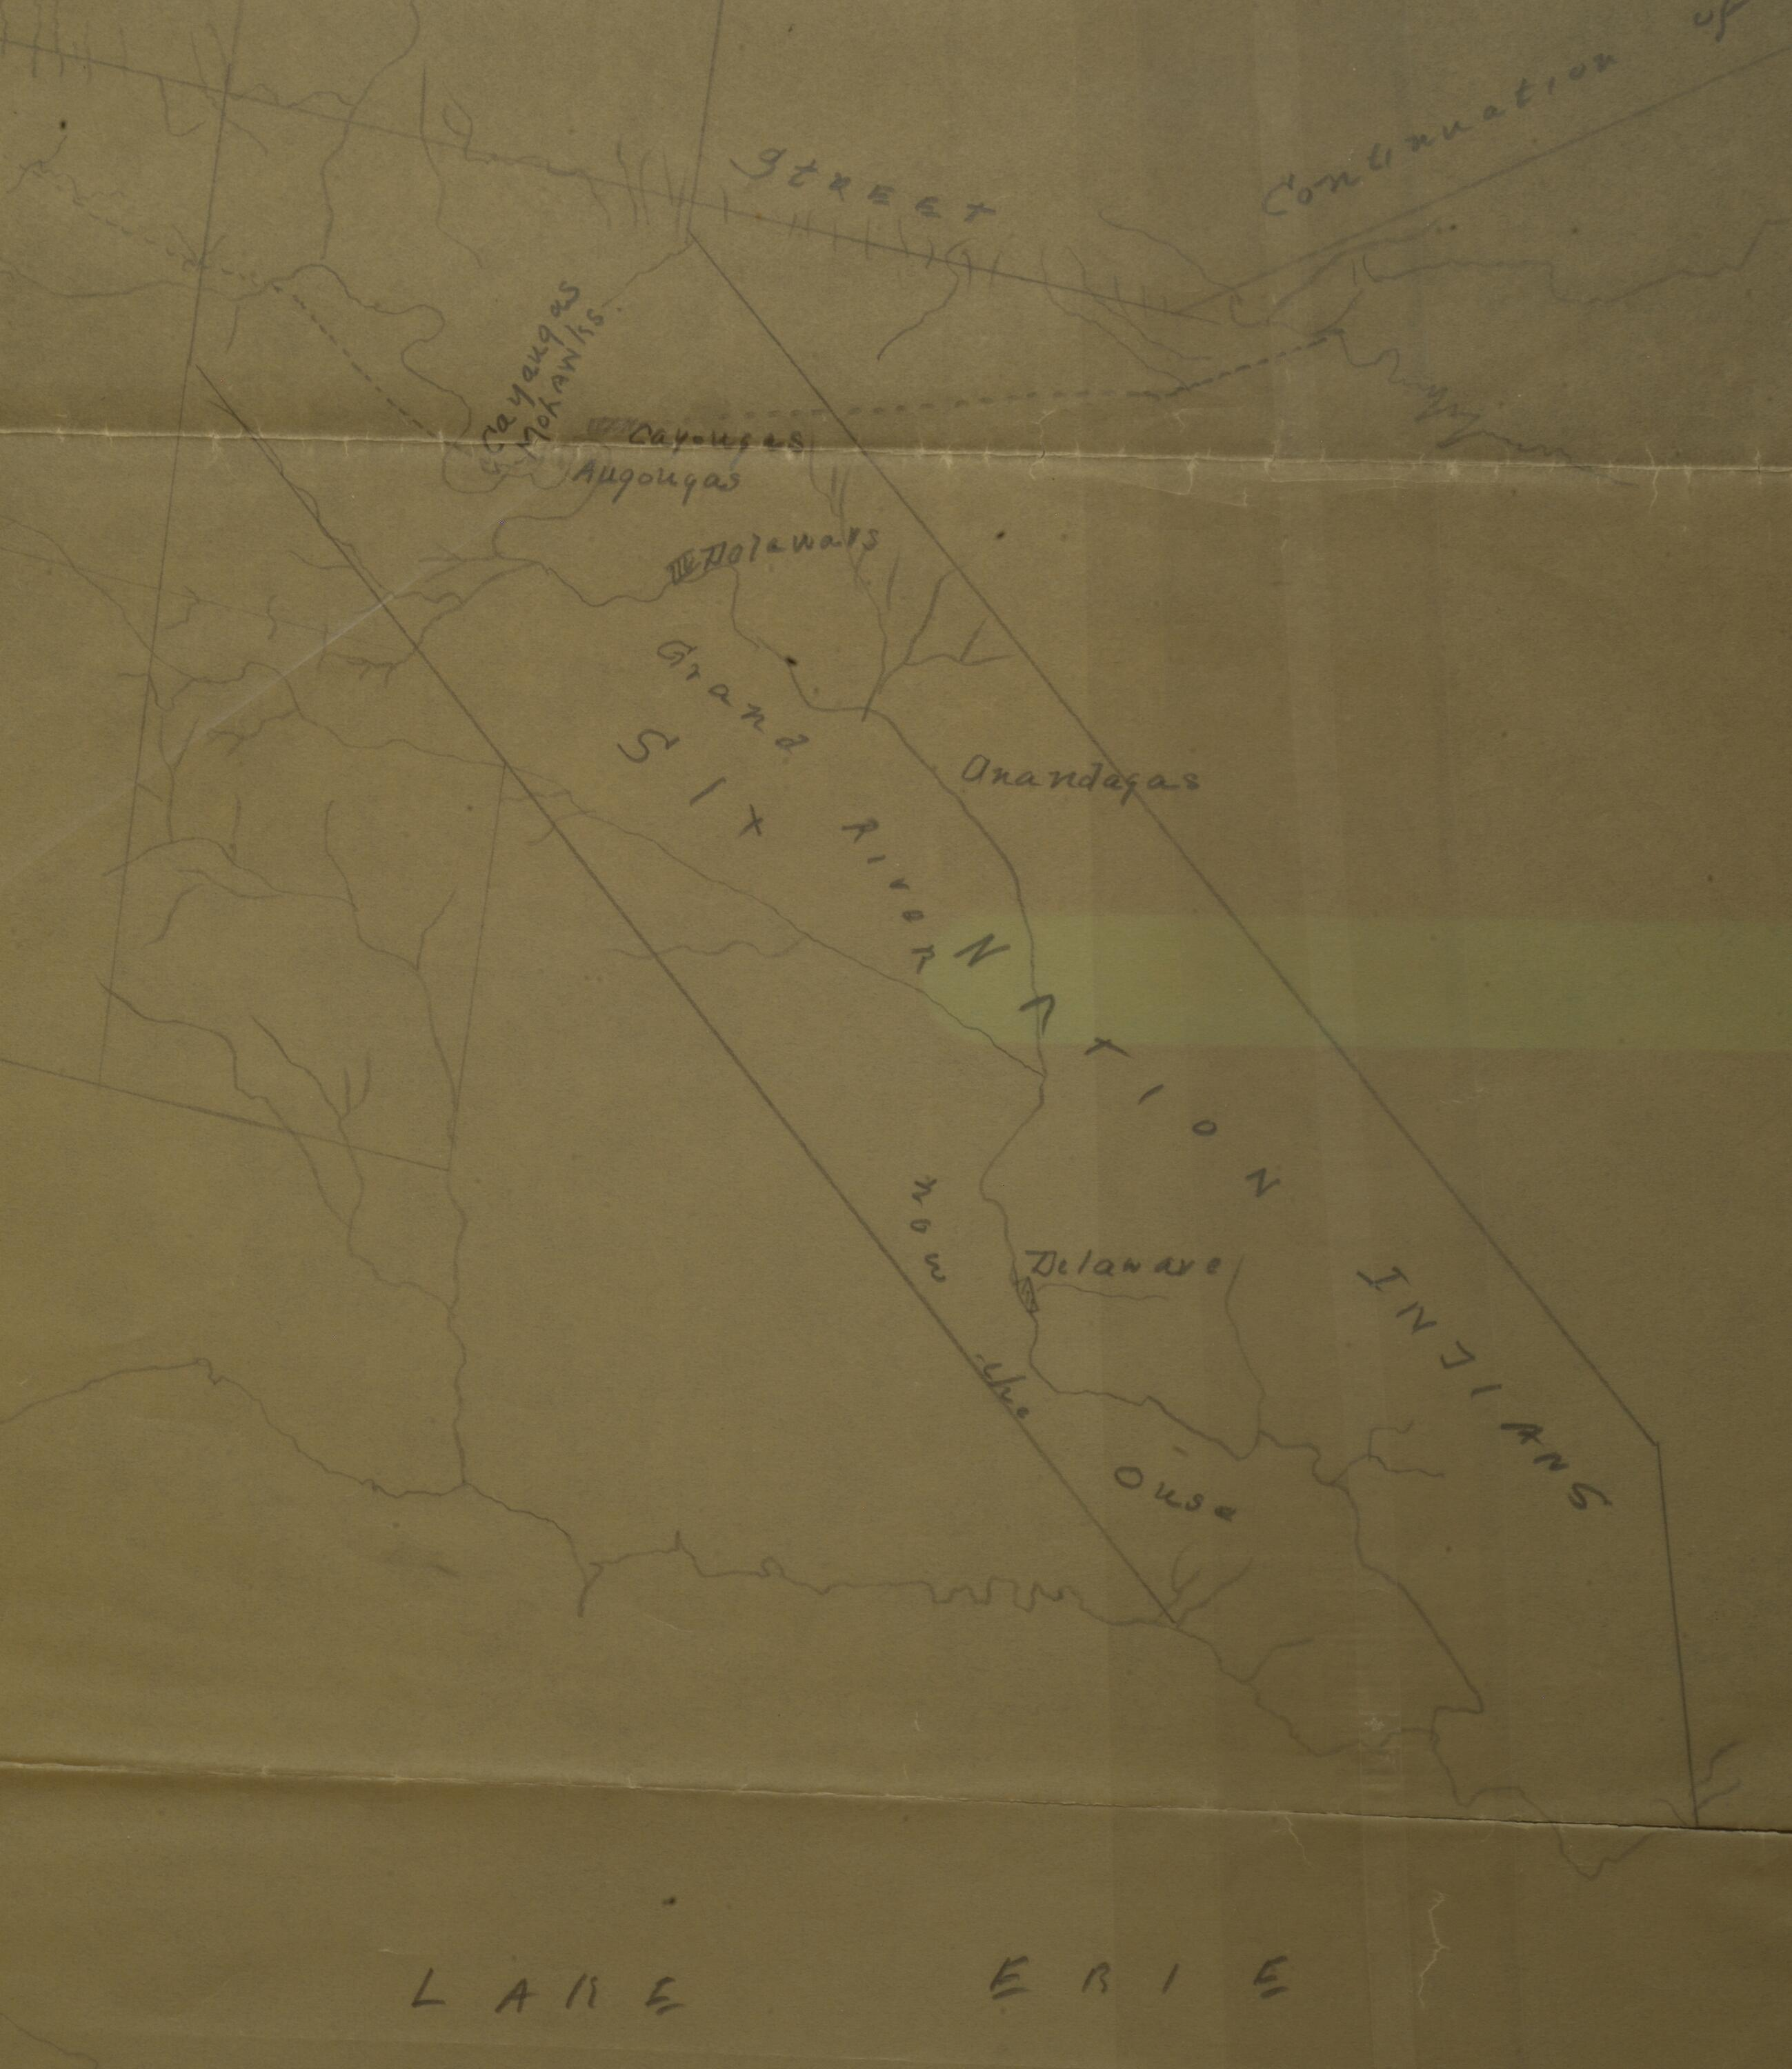 Map of the Grand River showing Indigenous Nations on the Haldimand Tract.